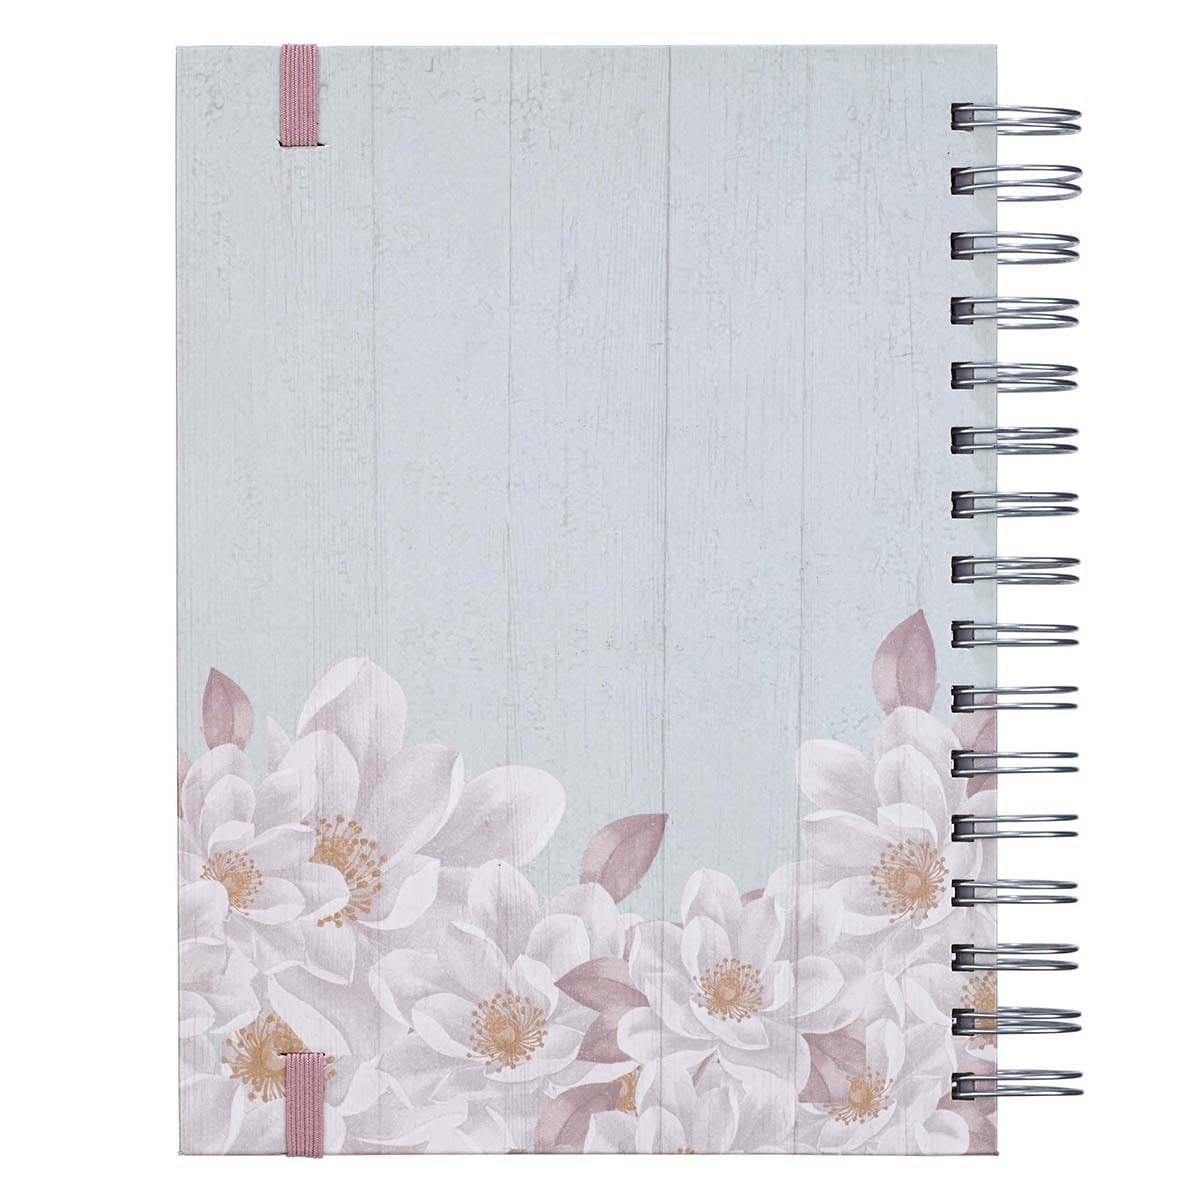 Unfading Beauty Large Wirebound Journal with Elastic Closure - 1 Peter 3:4